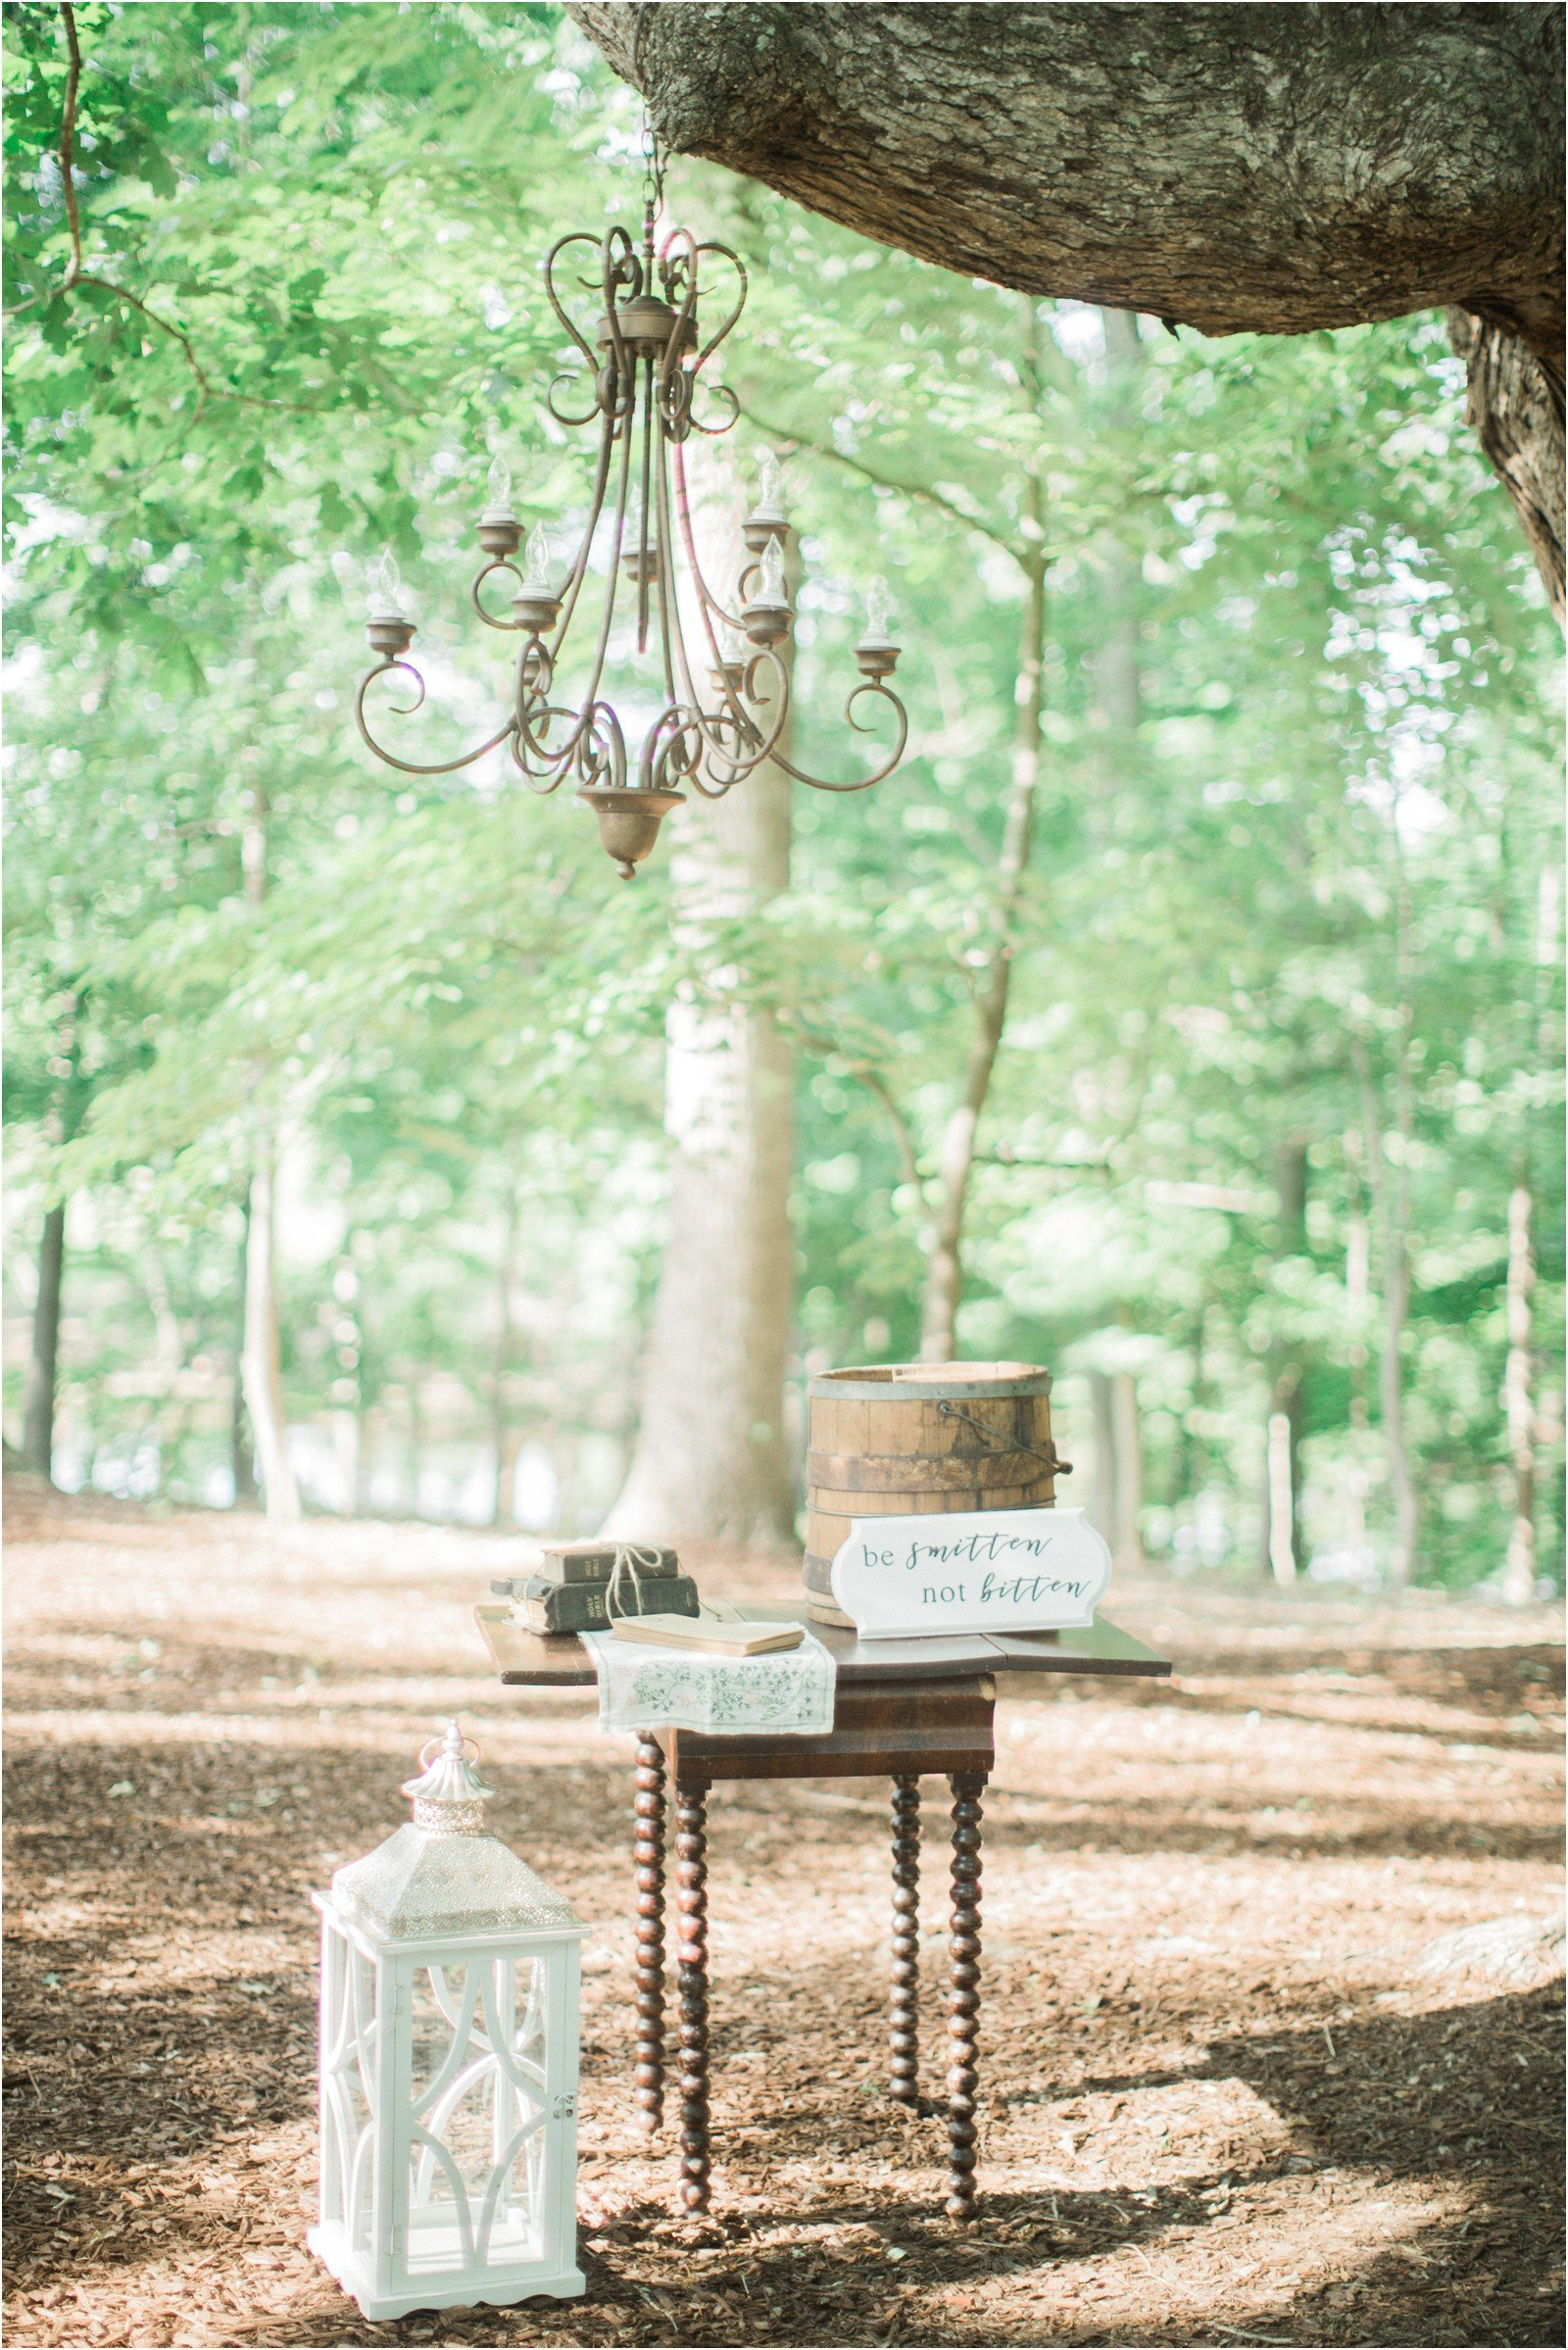 Chapel in the Woods Rustic Country Vintage Wedding Raleigh NC Plume Events Andrew & Tianna Photography-17